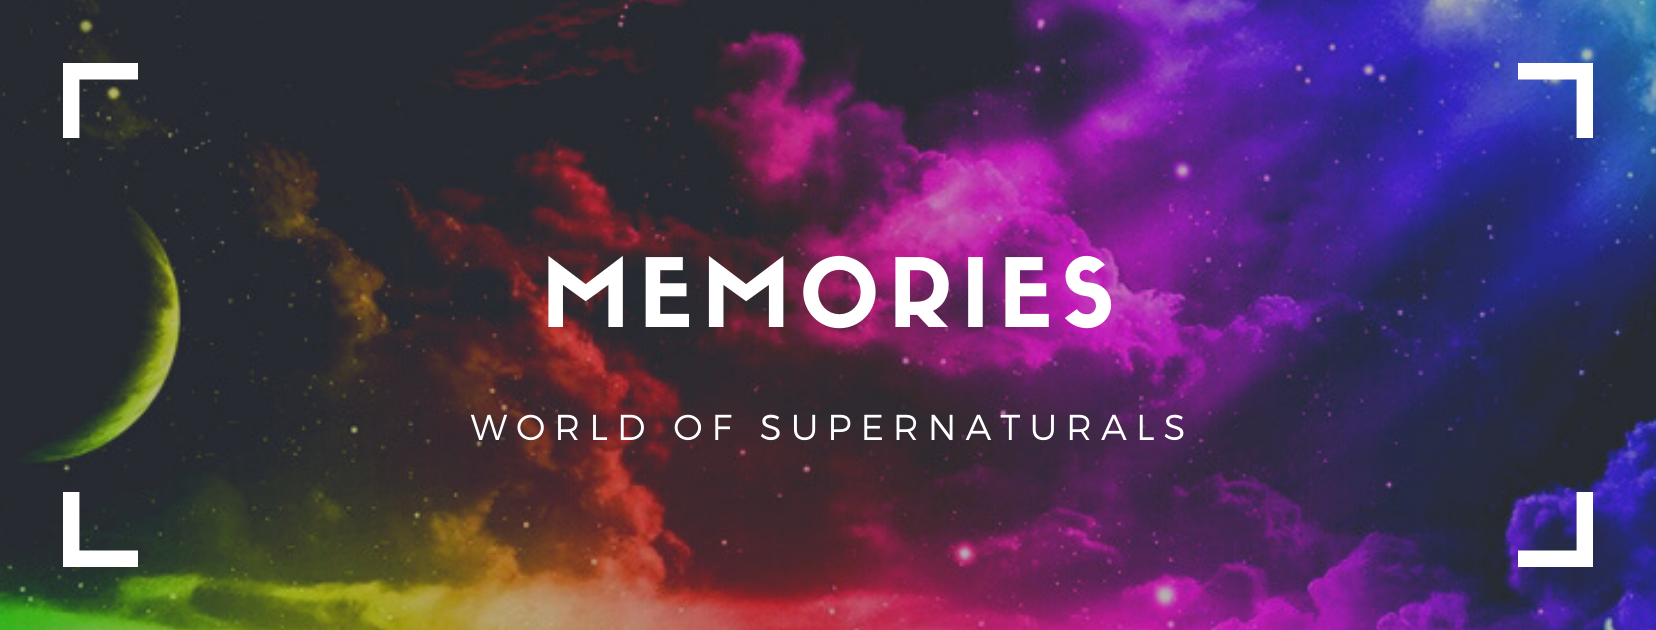 World of Supernaturals: Memories of Two Years